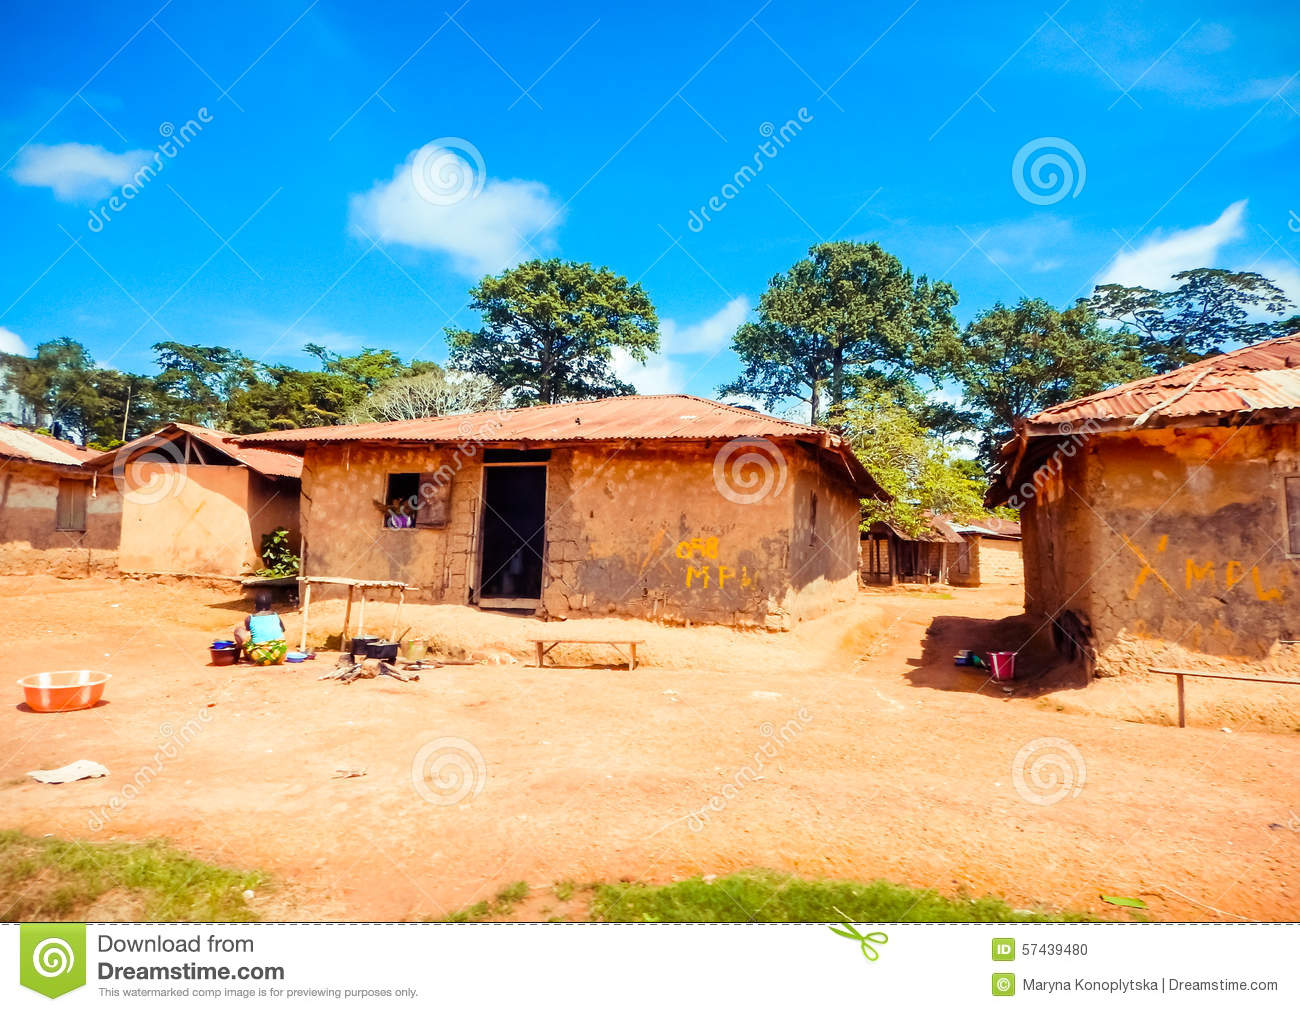 Poor housing the local population liberia africa stock for Liberia house plans